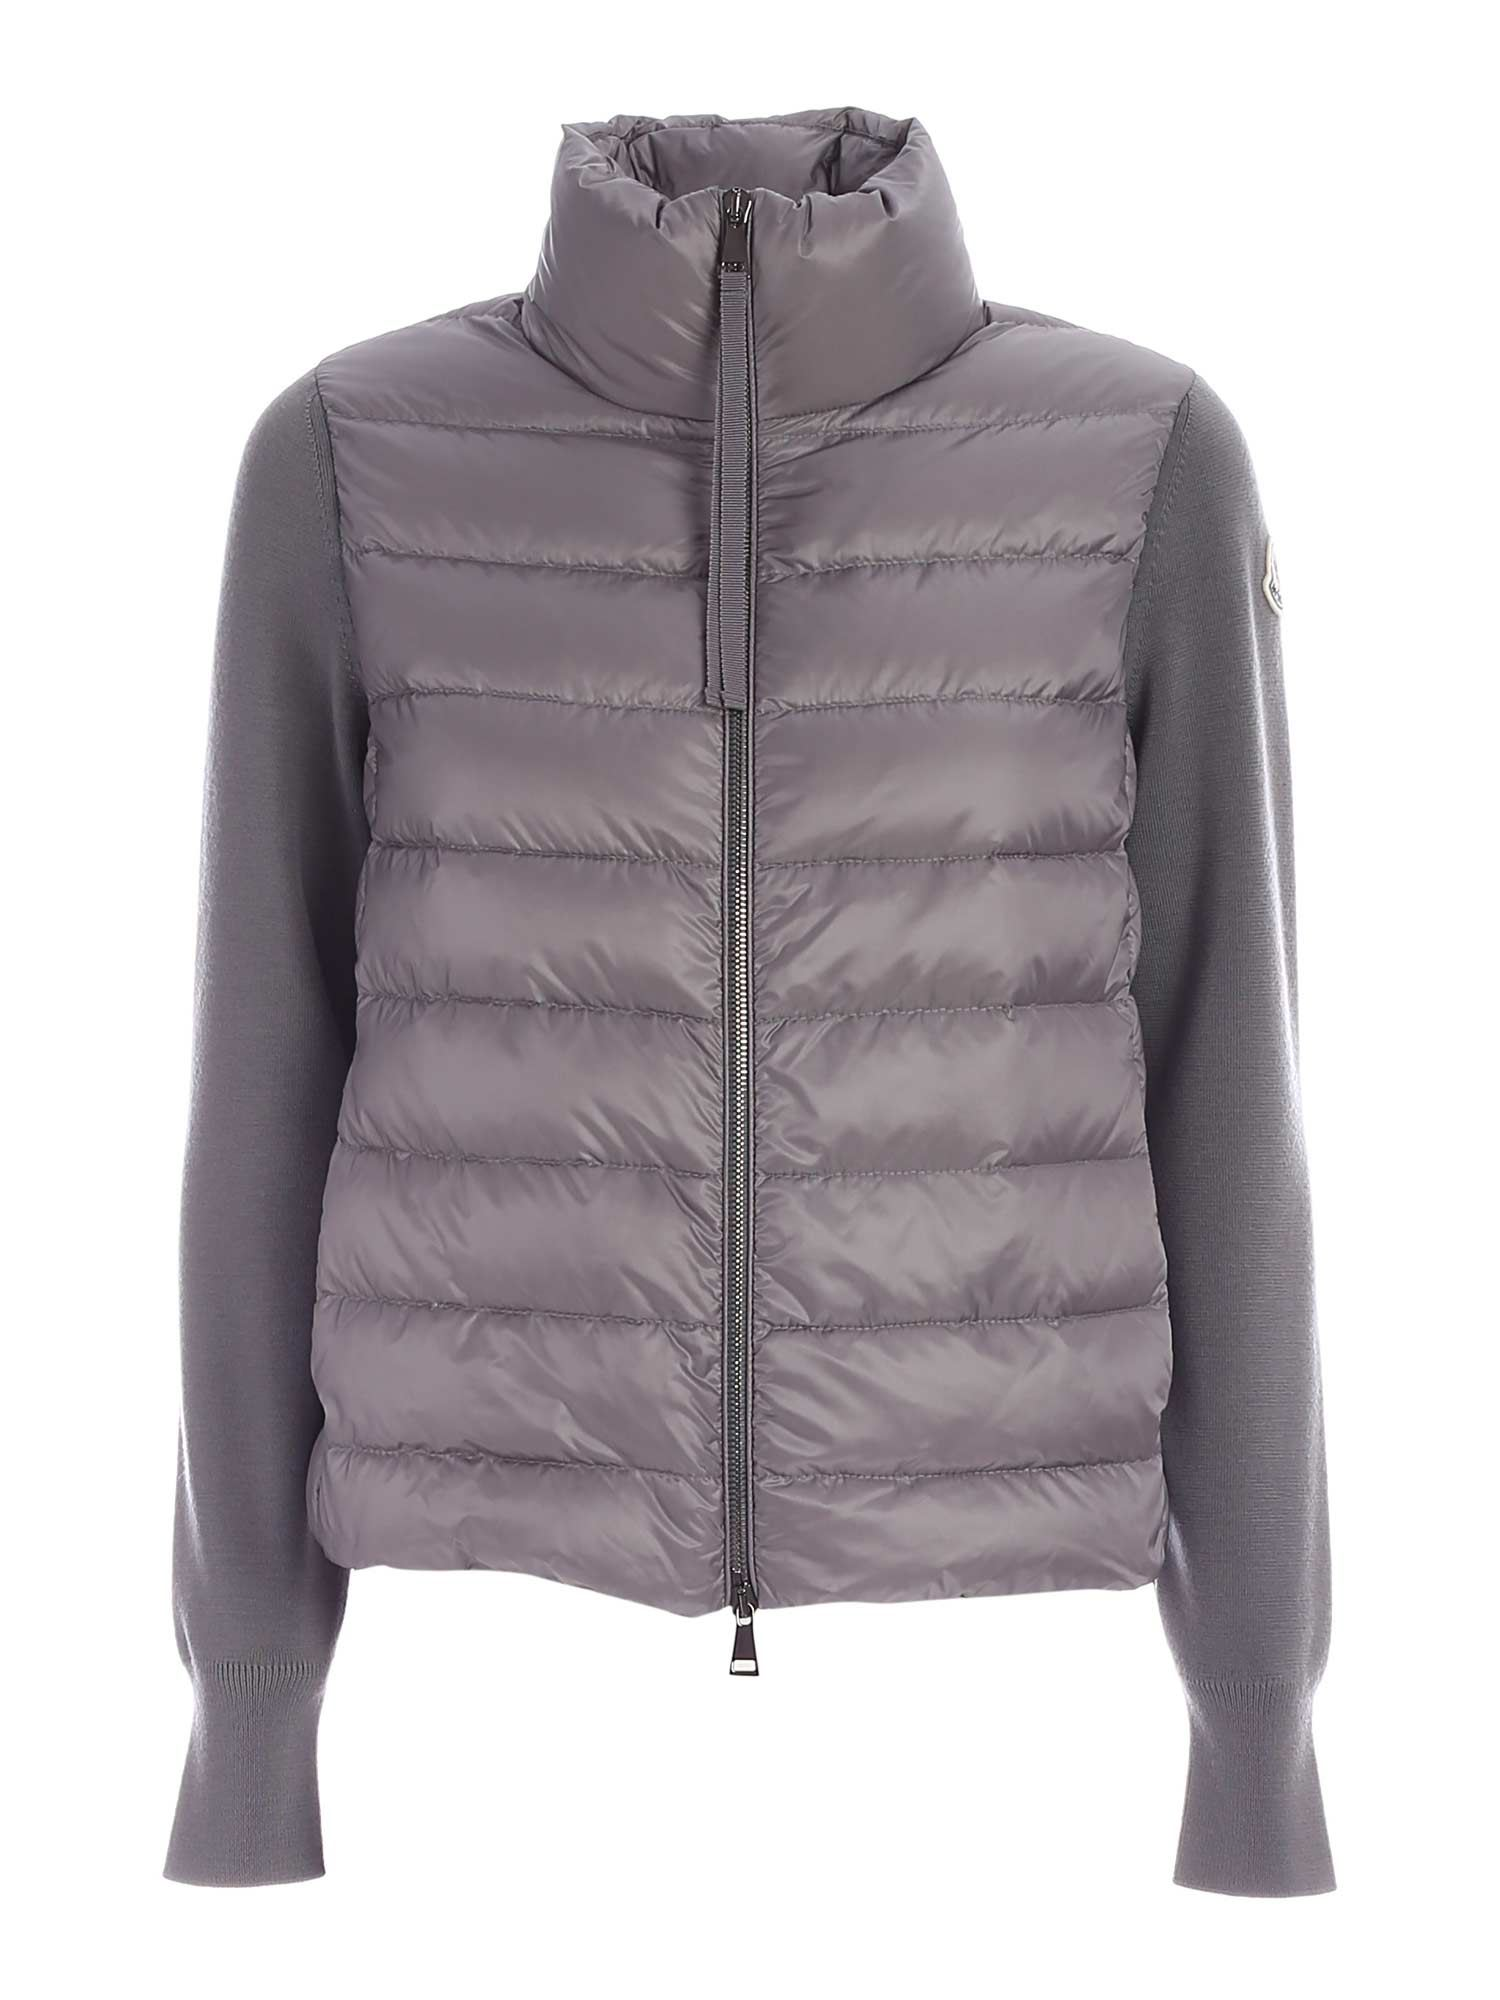 Moncler TRICOT CARDIGAN IN GREY